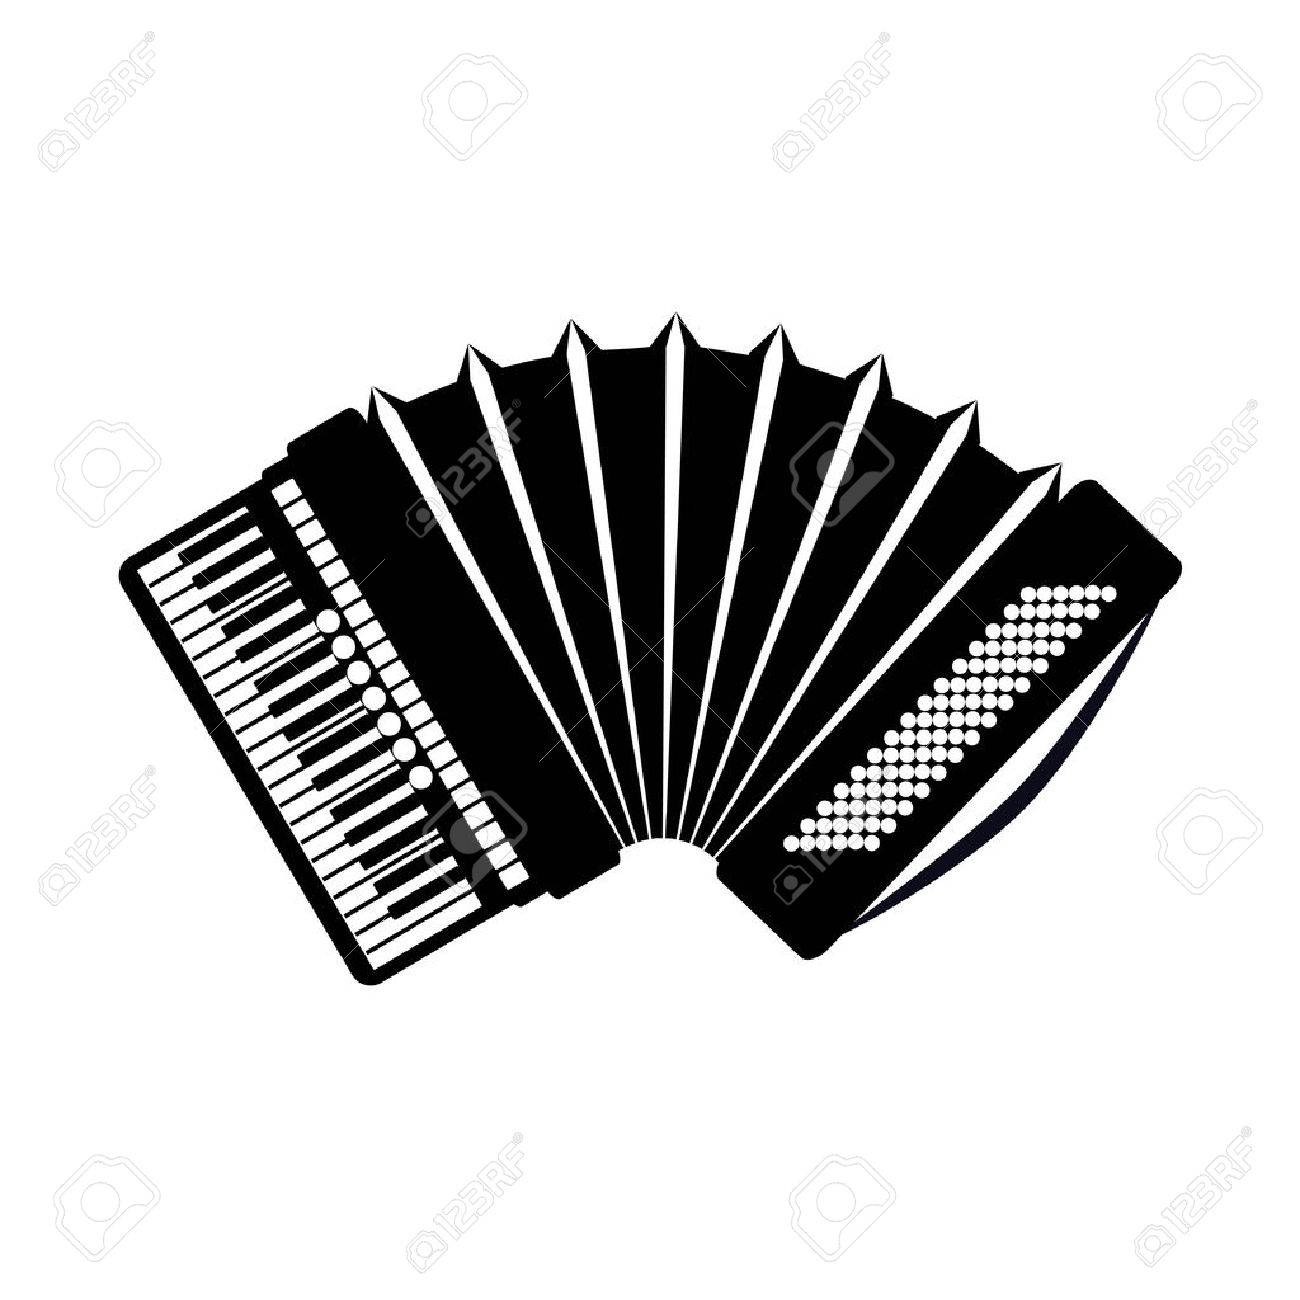 Accordion icon, isolated on white background. Musical instrument icon. - 68785129